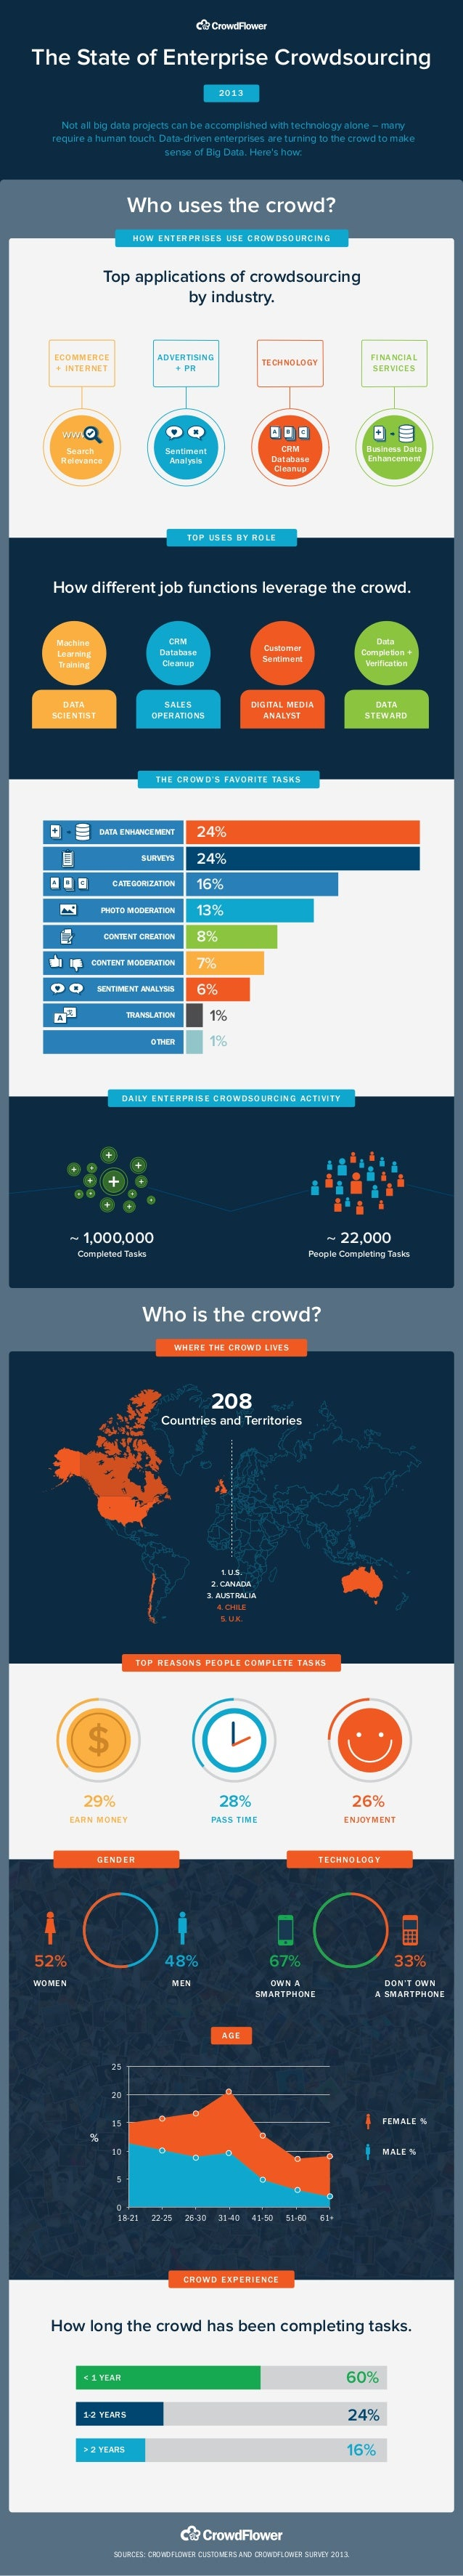 The State of Enterprise Crowdsourcing 2013  Not all big data projects can be accomplished with technology alone – many req...